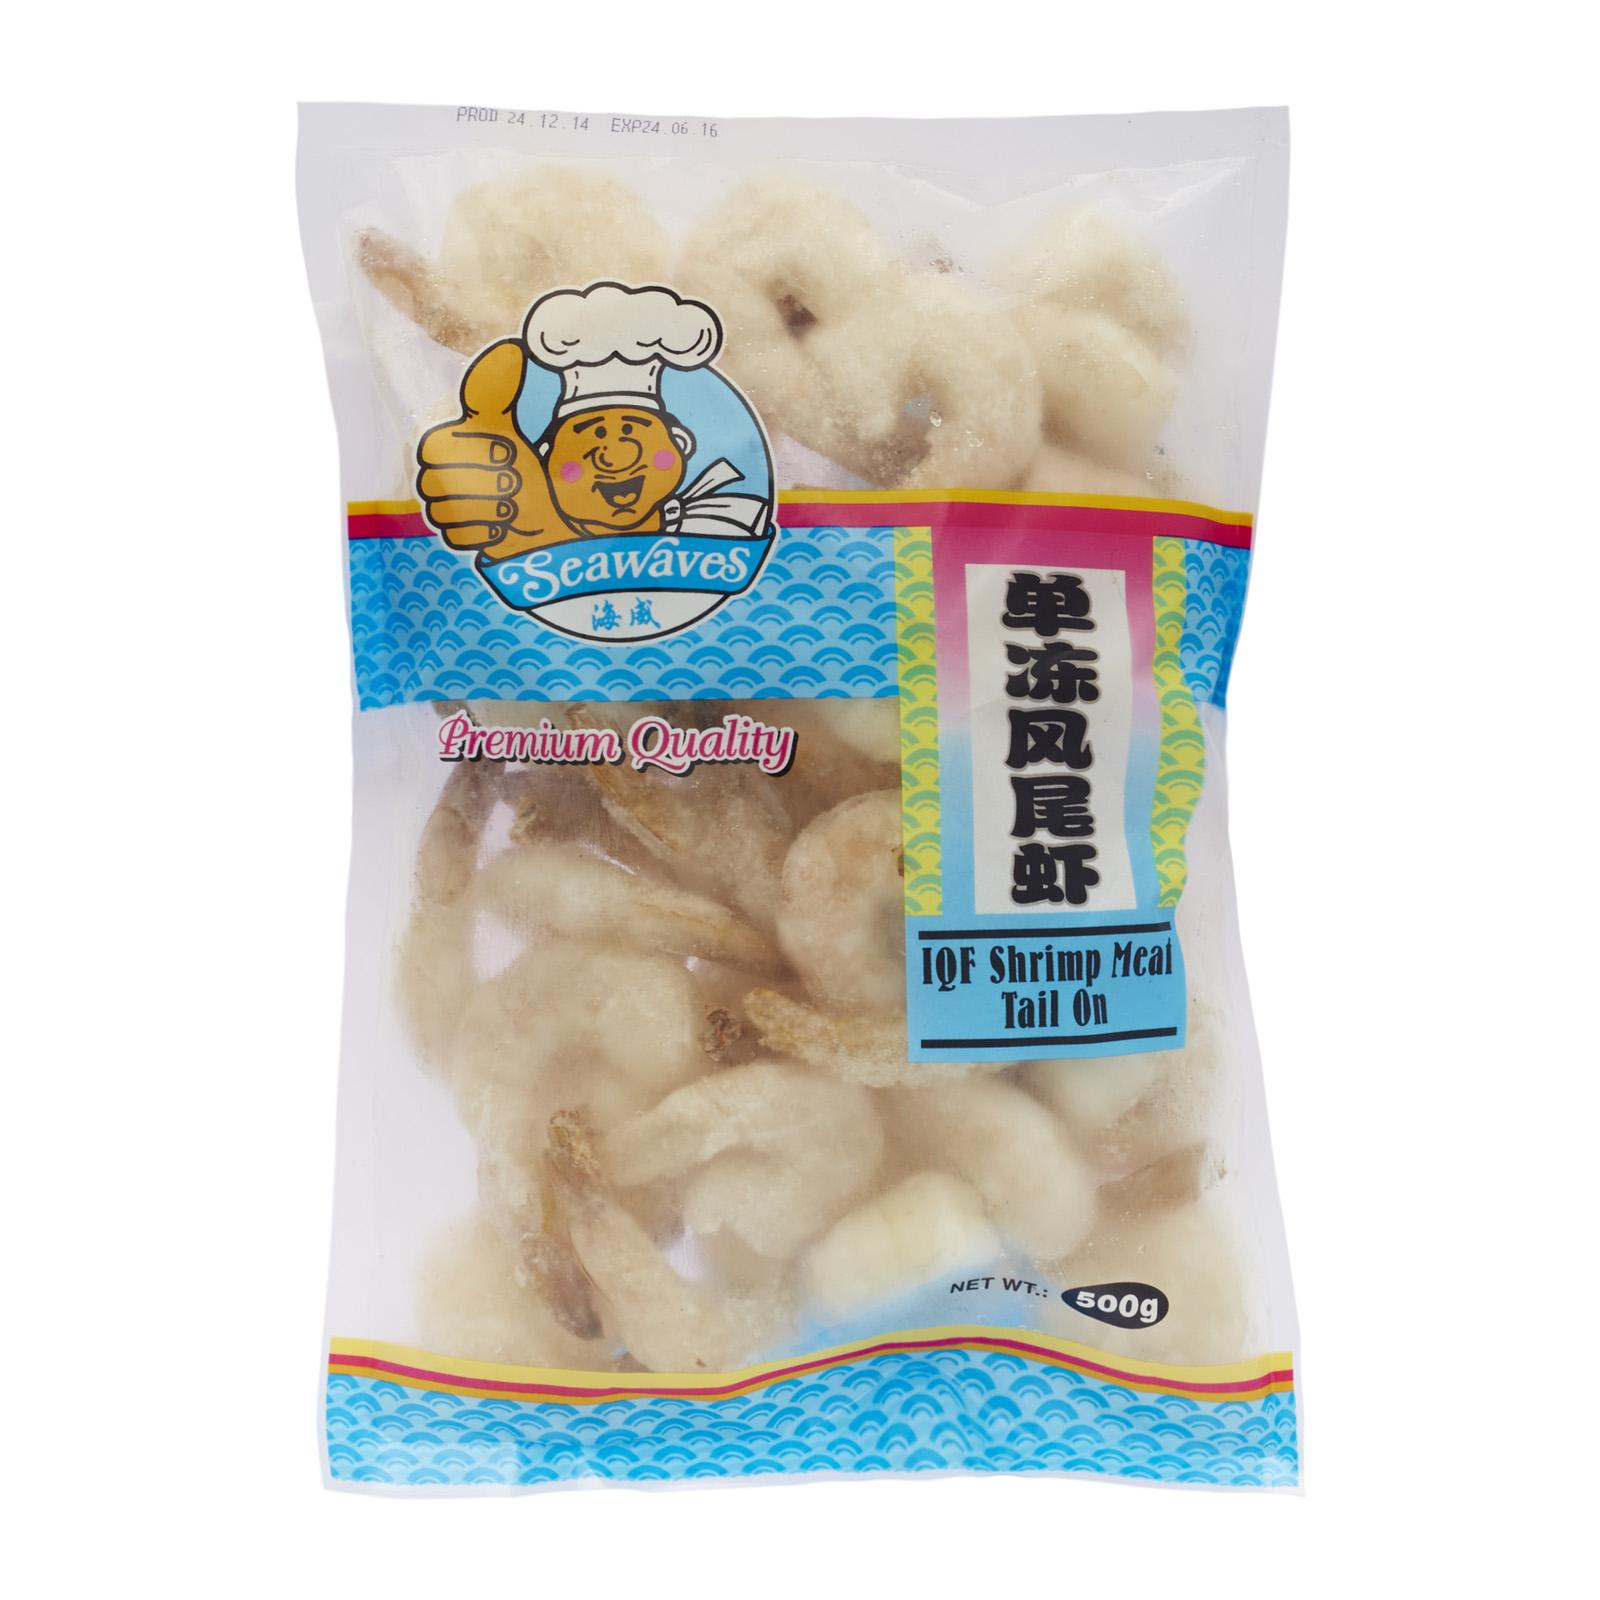 Seawaves Iqf Vannamei Shrimp Meat Tail On - Frozen